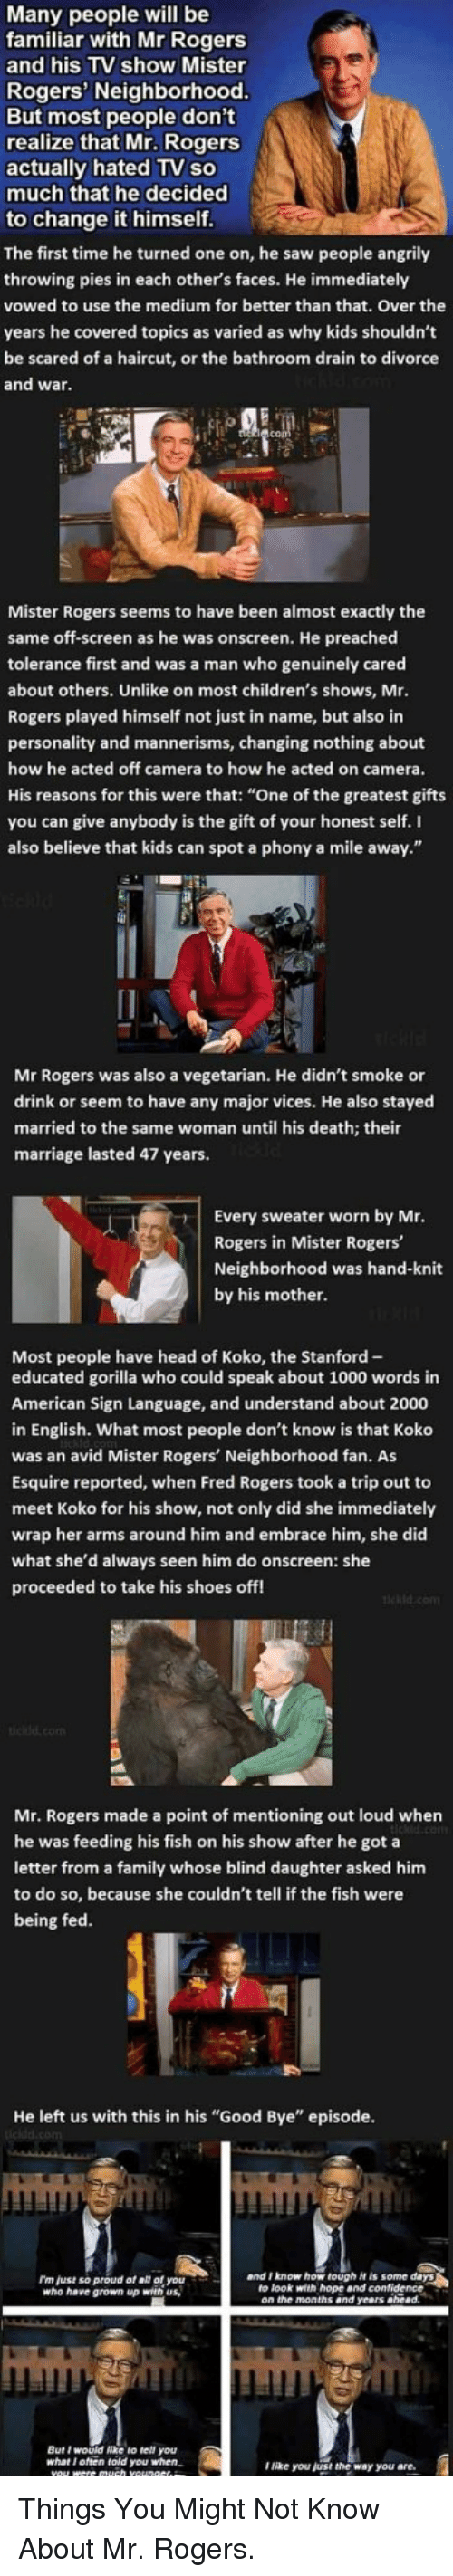 "fred rogers: Many people will be  familiar with Mr Rogers  and his TV show Mister  Rogers' Neighborhood  But most people don't  realize that Mr. Rogers  actually hated TV so  much that he decided  to change it himself  The first time he turned one on, he saw people angrily  throwing pies in each other's faces. He immediately  vowed to use the medium for better than that. Over the  years he covered topics as varied as why kids shouldn't  be scared of a haircut, or the bathroom drain to divorce  and wa  Mister Rogers seems to have been almost exactly the  same off-screen as he was onscreen. He preached  tolerance first and was a man who genuinely cared  about others. Unlike on most children's shows, Mr  Rogers played himself not just in name, but also in  personality and mannerisms, changing nothing about  how he acted off camera to how he acted on camera.  His reasons for this were that: ""One of the greatest gifts  you can give anybody is the gift of your honest self. I  also believe that kids can spot a phony a mile away.""  Rogers was also a vegetarian. He didn't smoke or  drink or seem to have any major vices. He also stayed  married to the same woman until his death; their  marriage lasted 47 years.  Every sweater worn by Mr  Rogers in Mister Rogers  Neighborhood was hand-knit  by his mother  Most people have head of Koko, the Stanford-  educated gorilla who could speak about 1000 words in  American Sign Language, and understand about 2000  in English. What most people don't know is that Koko  was an avid Mister Rogers' Neighborhood fan. As  Esquire reported, when Fred Rogers took a trip out to  meet Koko for his show, not only did she immediately  wrap her arms around him and embrace him, she did  what she'd always seen him do onscreen: she  proceeded to take his shoes off  Mr. Rogers made a point of mentioning out loud when  e was feeding his fish on his show after he got a  letter from a family whose blind daughter asked him  to do so, because she couldn't tell if the fish were  being fed.  He left us with this in his ""Good Bye"" episode.  I'm just so proud of all of you  who have grown up with us,  and I know how tough it is some days  to look with hope and confidence  But I would ke to tell you  what I often told you when  lNke you just the way you are. <p>Things You Might Not Know About Mr. Rogers.</p>"